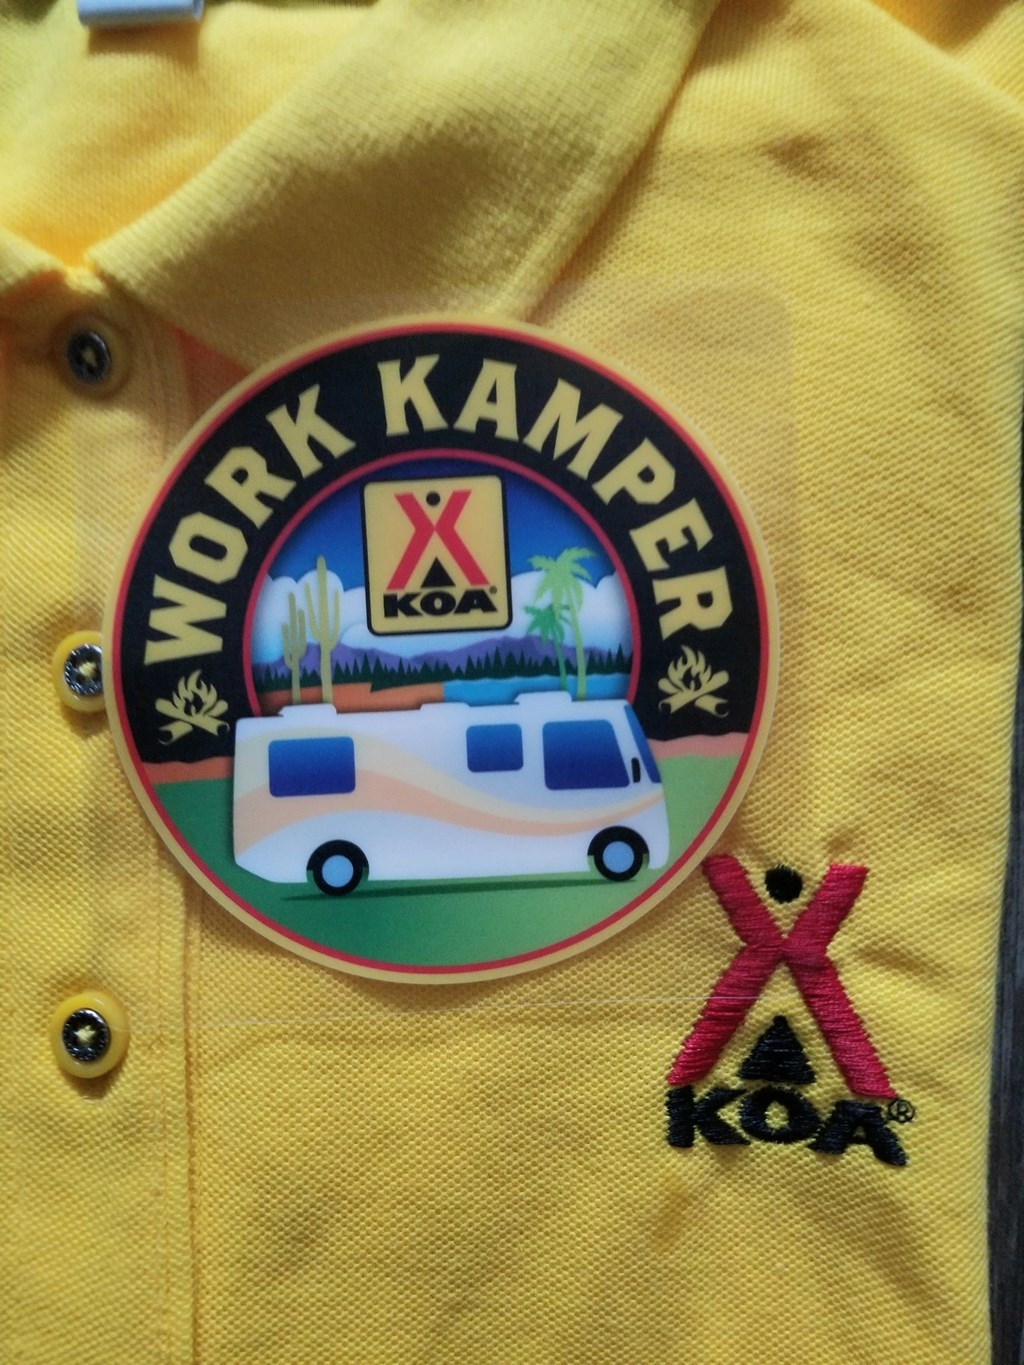 What it's like to be a Work Kamper